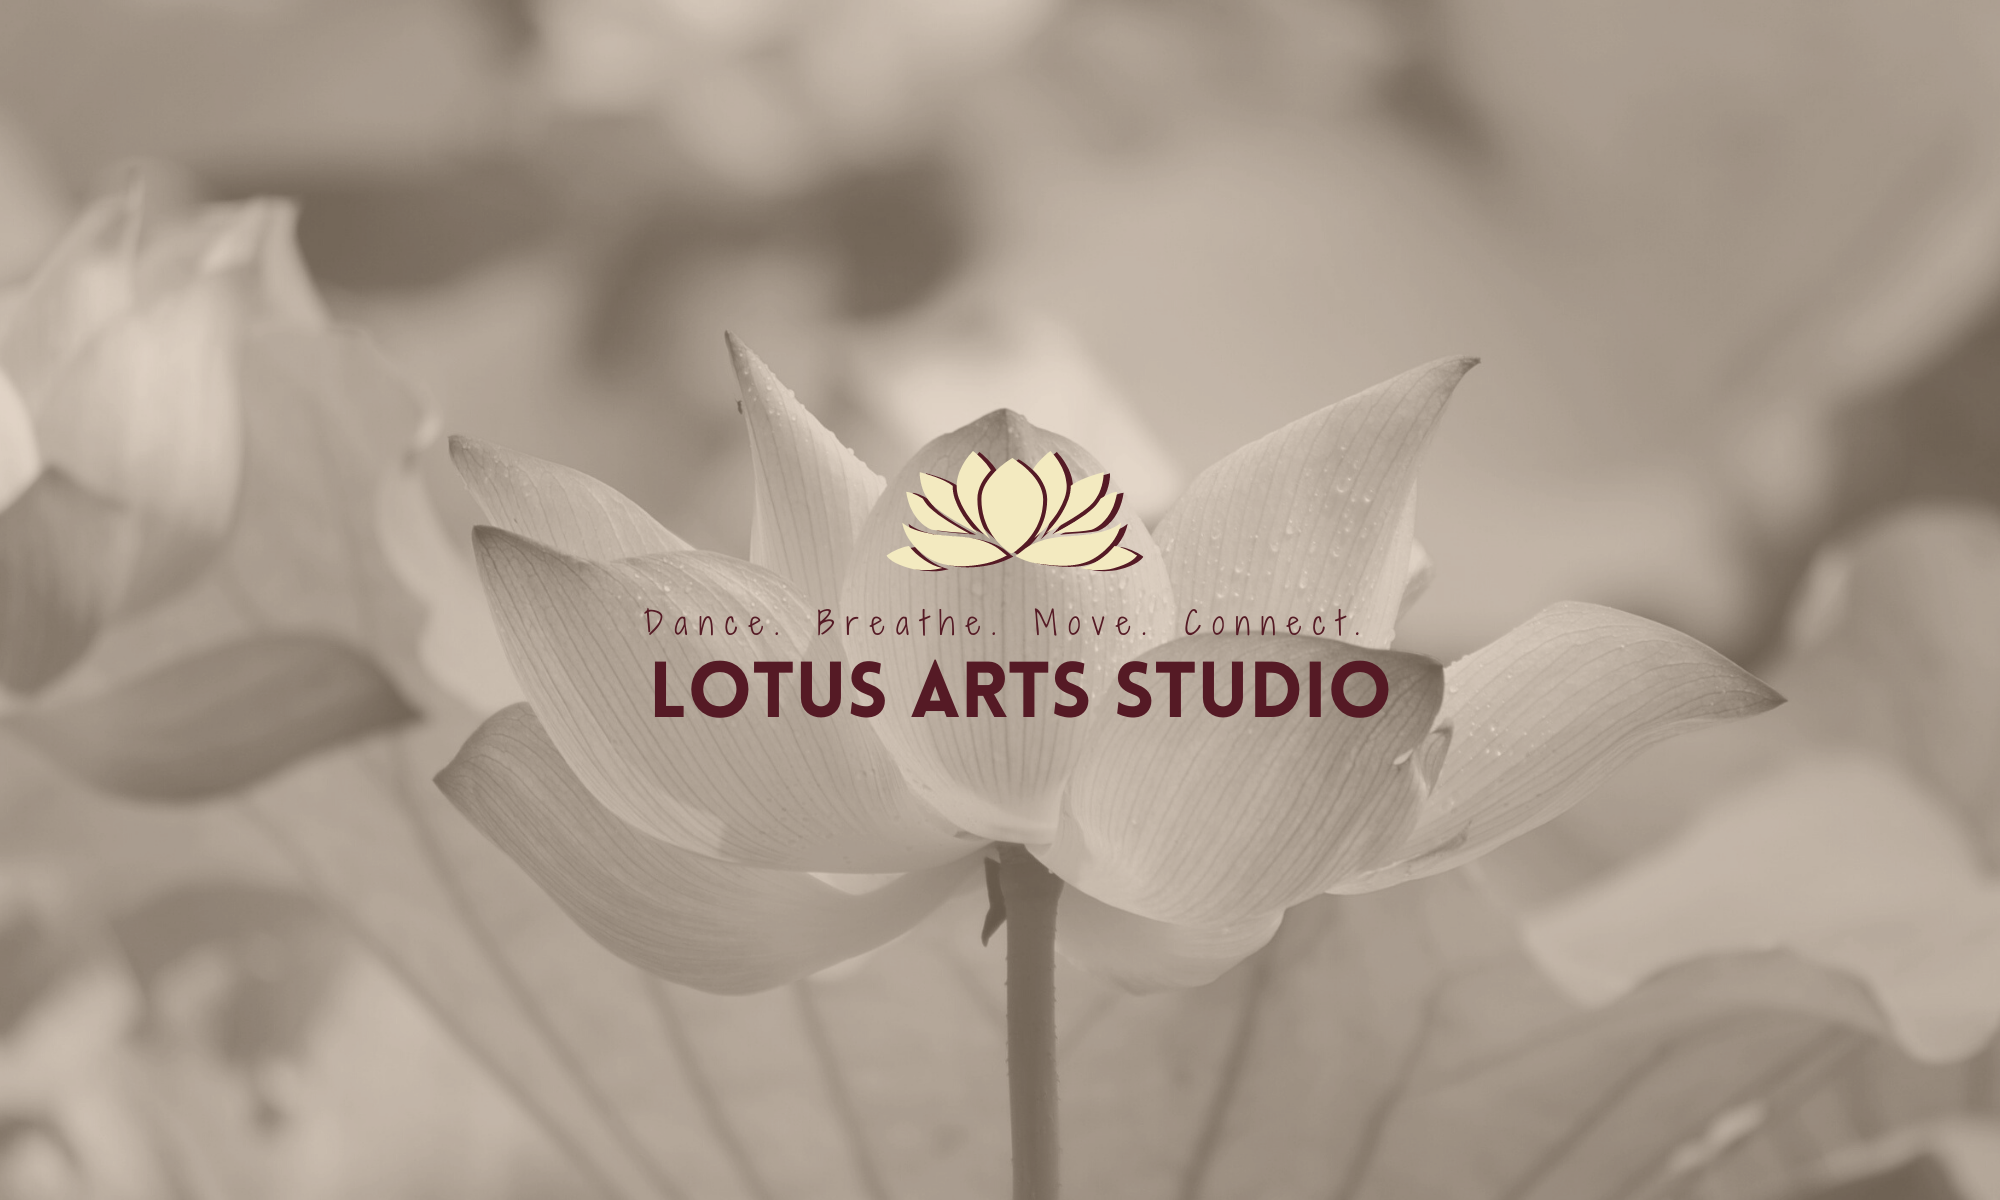 Lotus Arts Studio